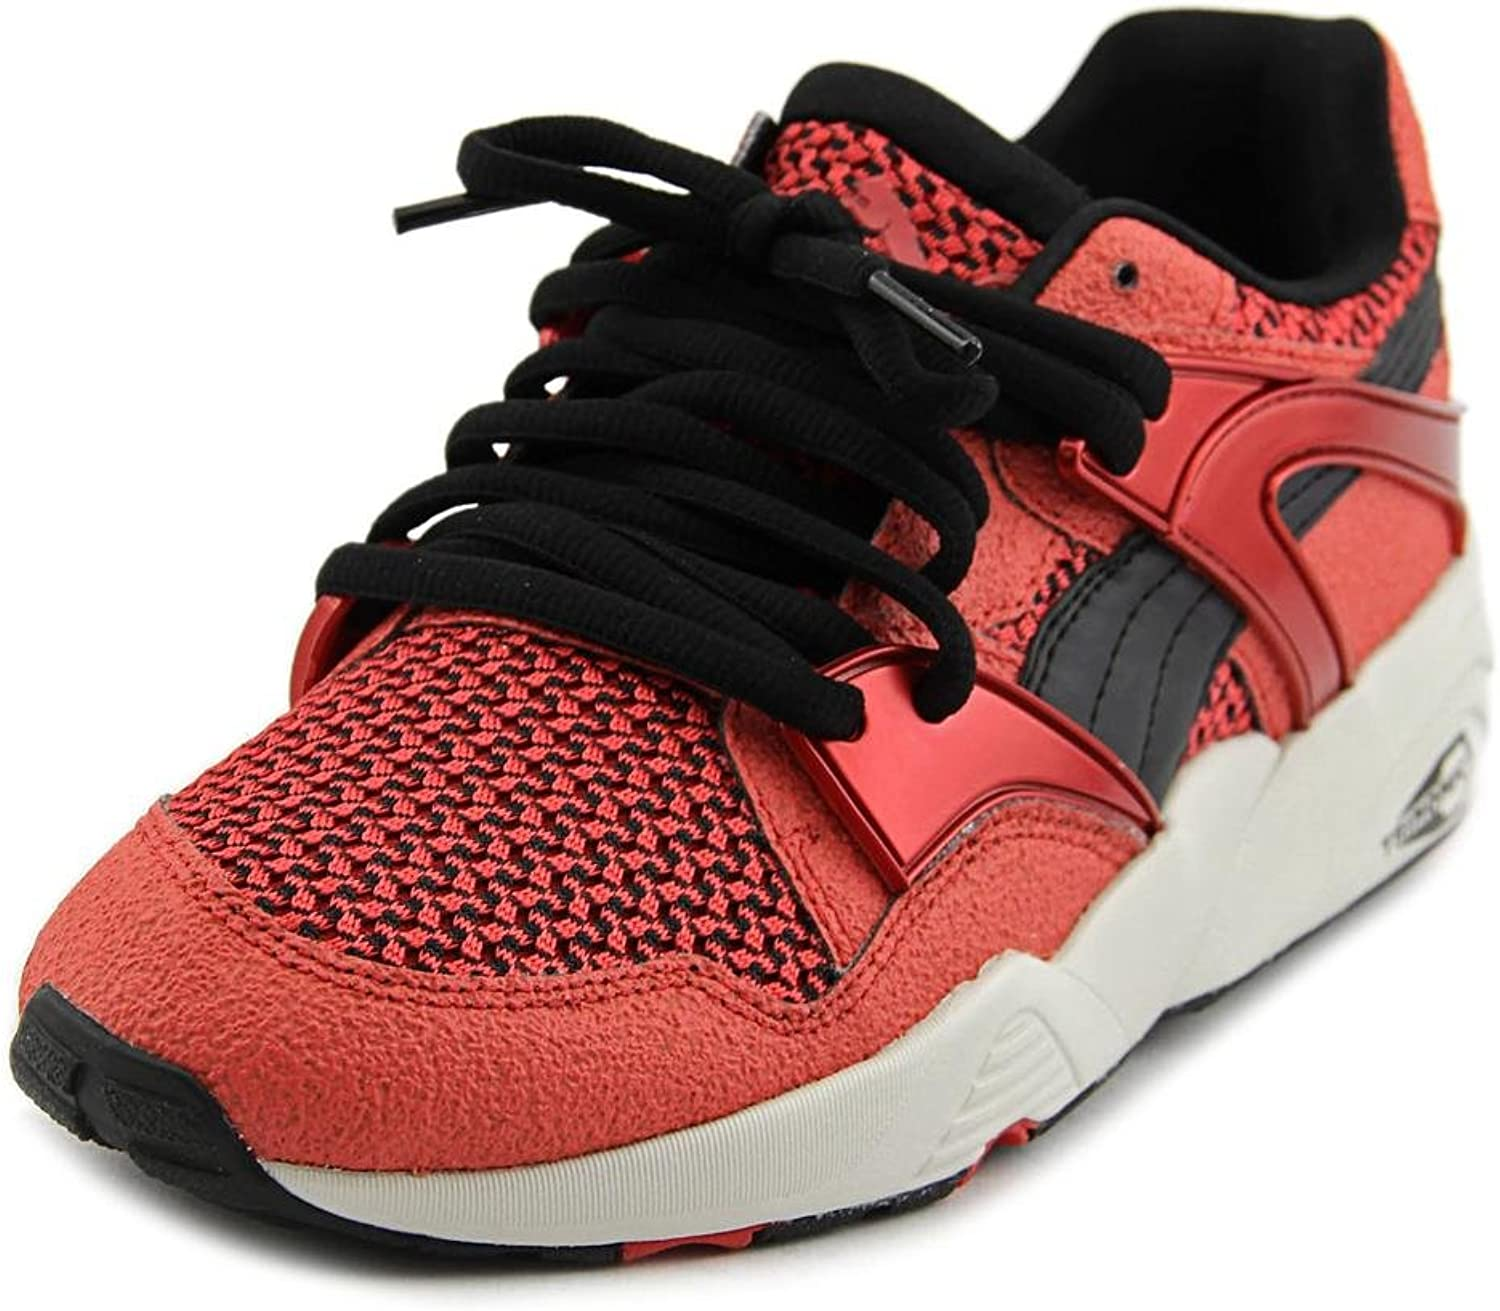 Puma Blaze Knit Mens Red Suede Leather Lace Up Sneakers shoes 11.5